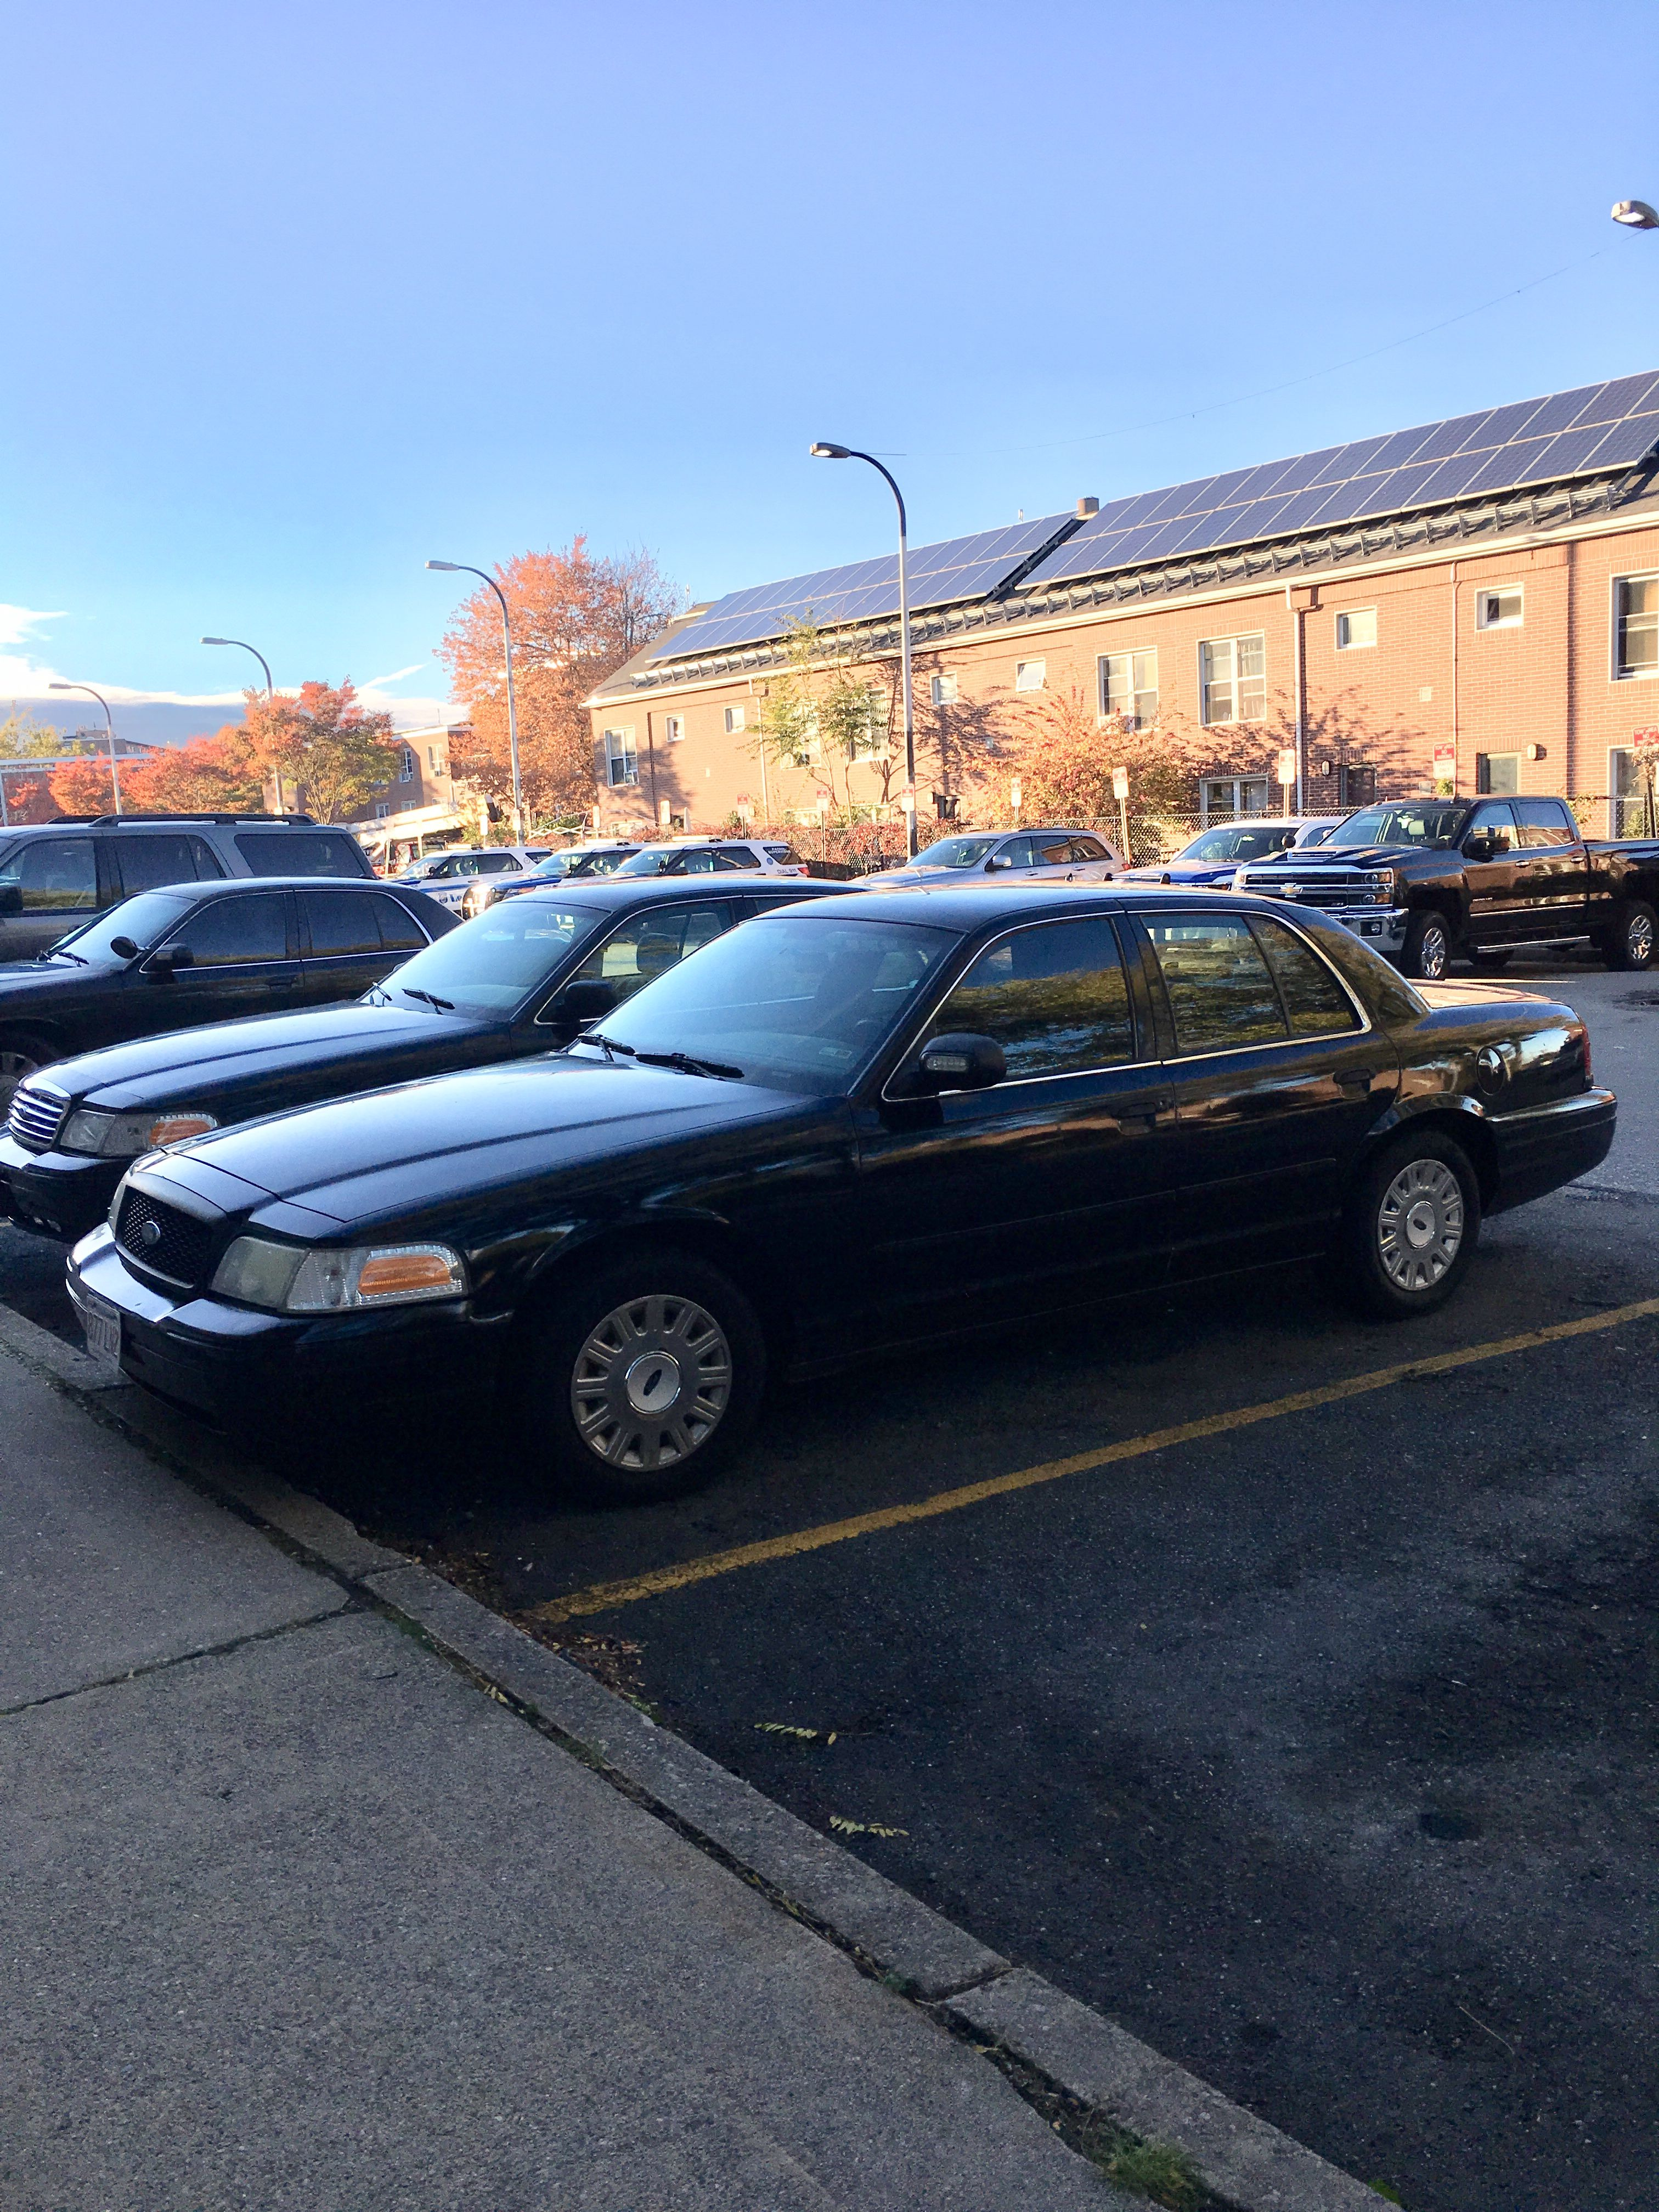 Unmarked Crown vic part of Lowell Police Department | Police